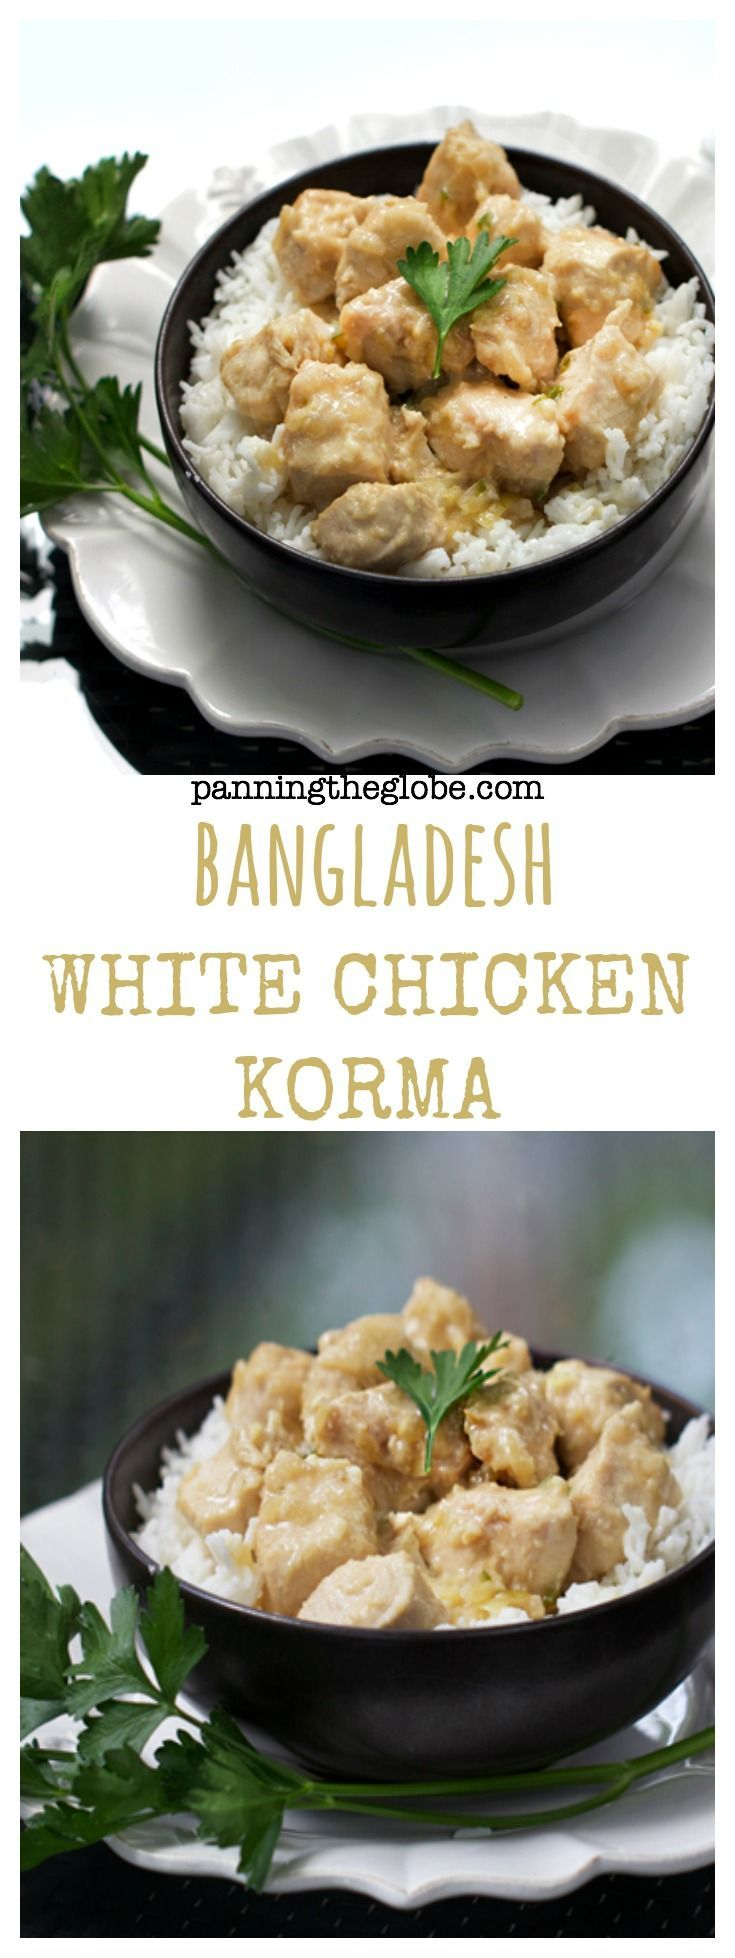 White Chicken Korma: mild, family-friendly curry, wonderfully spiced, braised with yogurt, quick and easy. Gluten free.